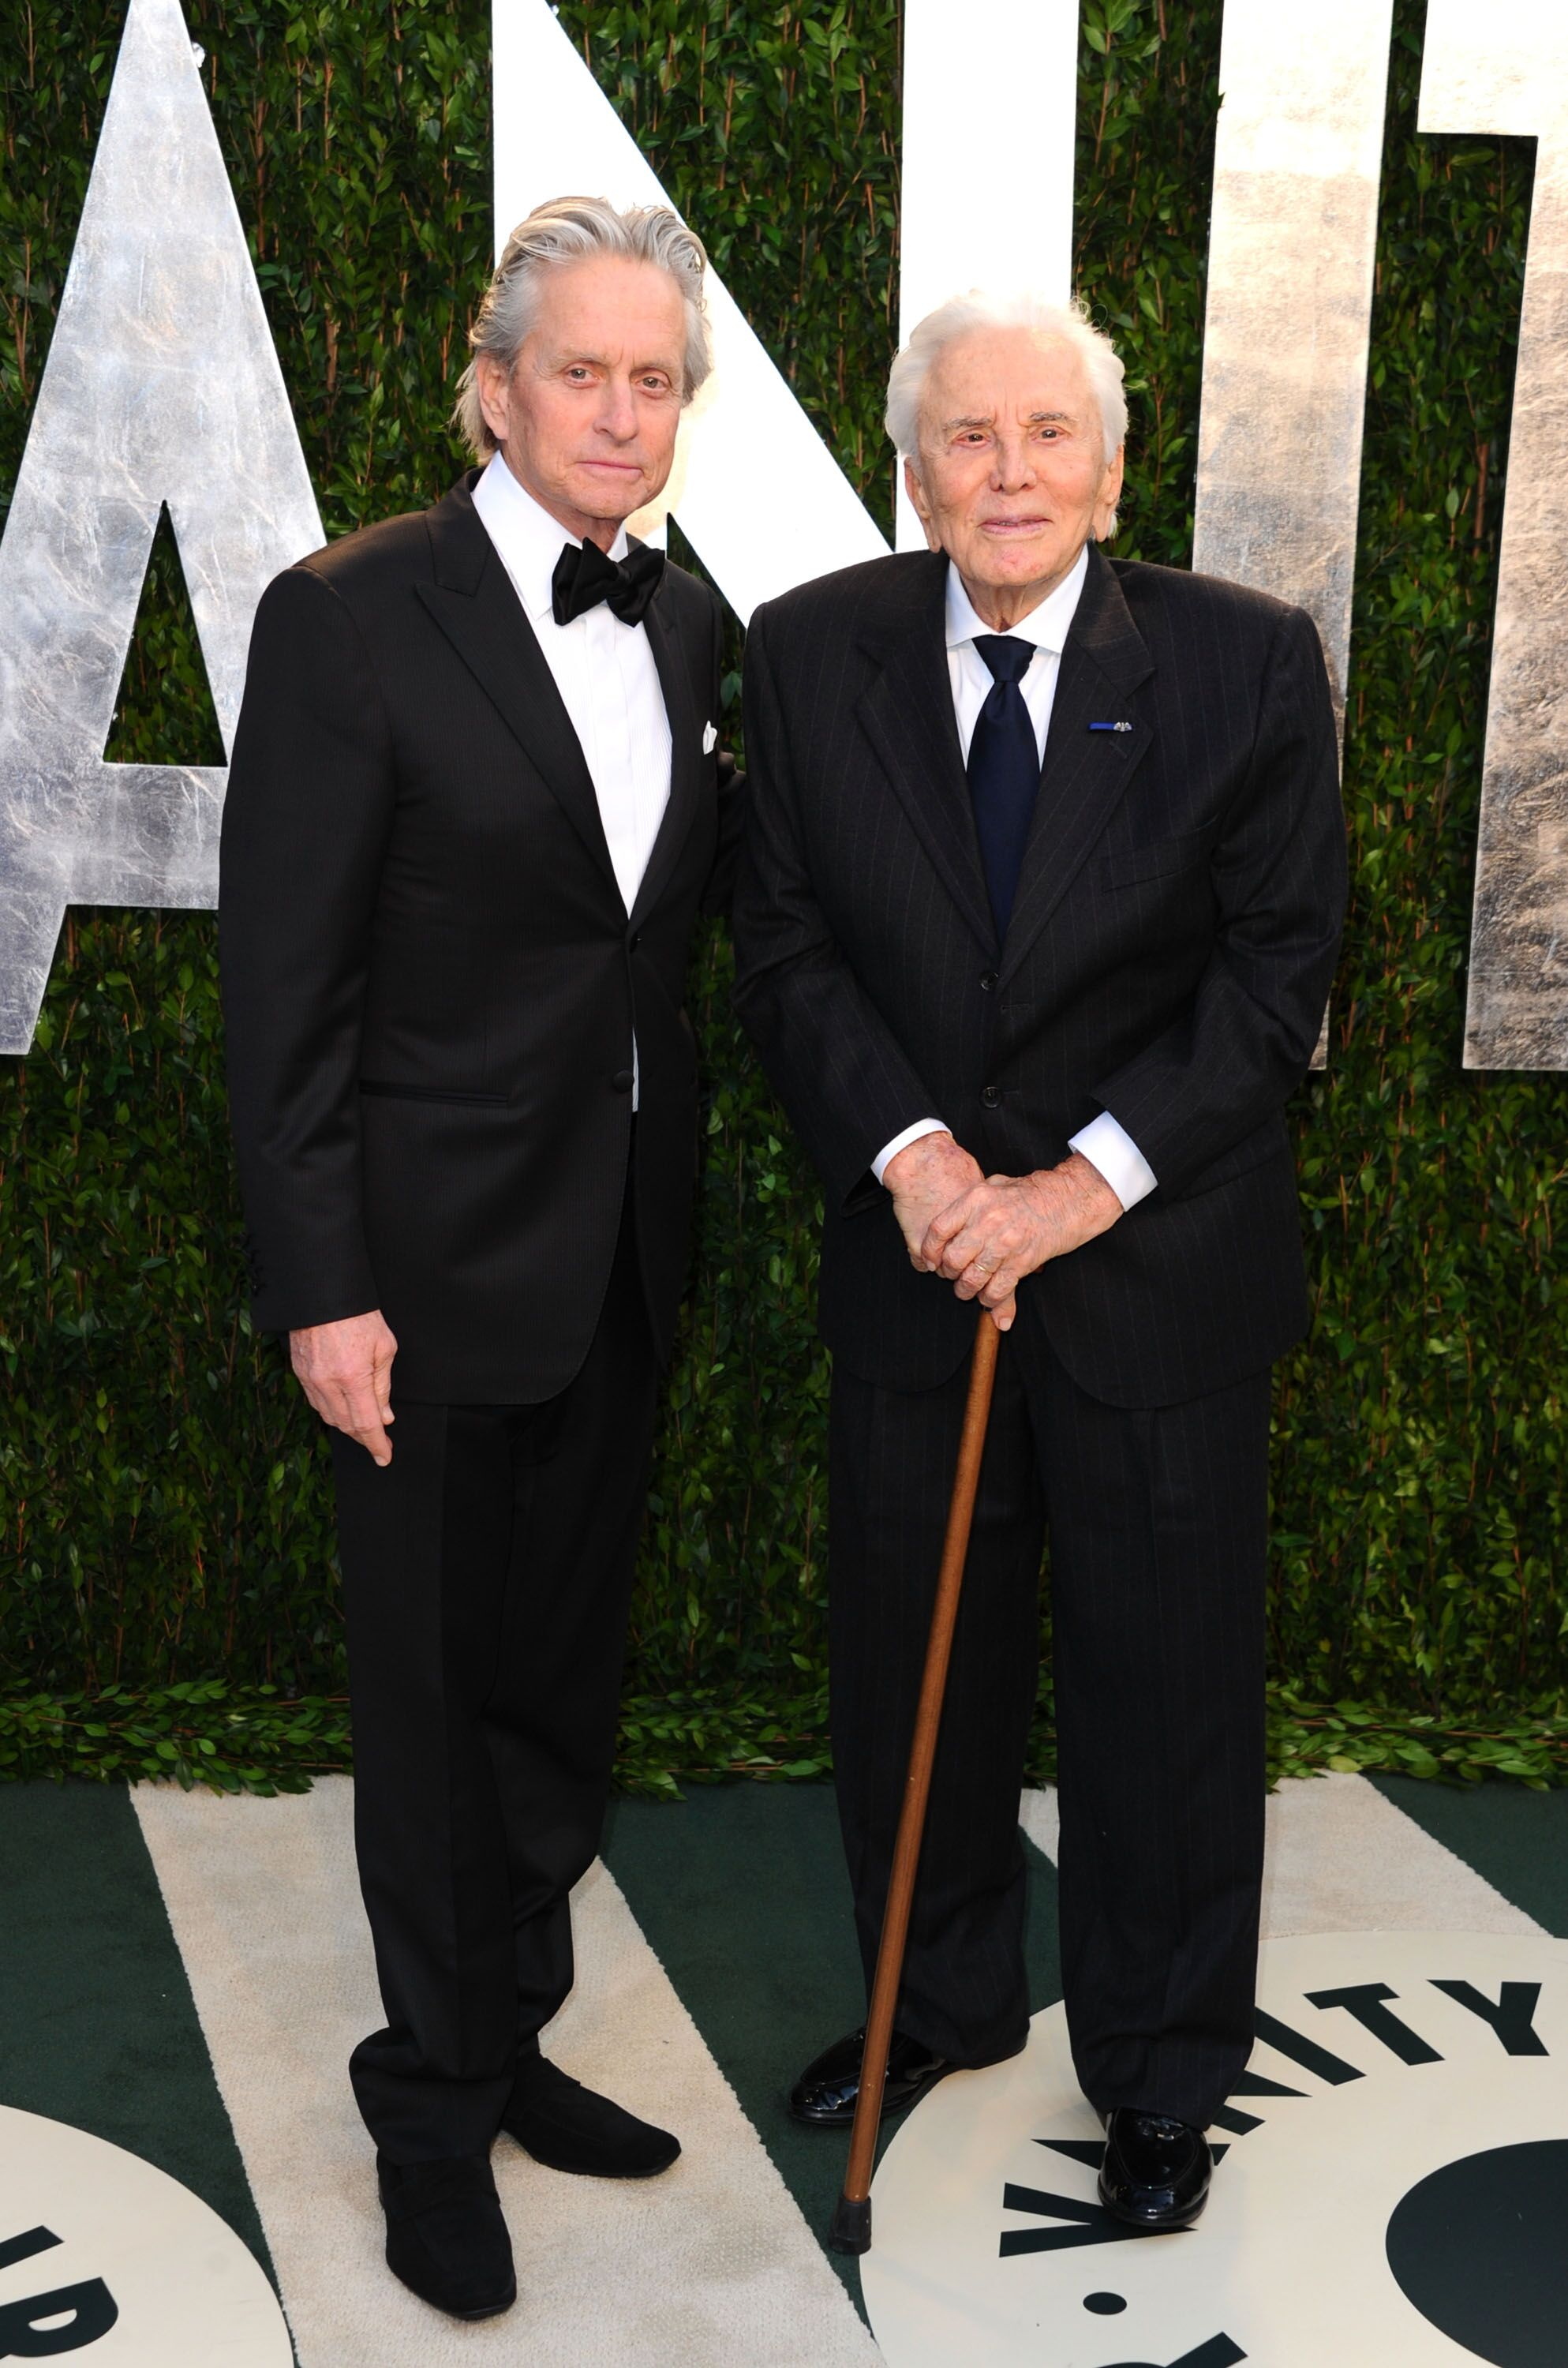 Michael Douglas and Kirk Douglas arrive at the 2012 Vanity Fair Oscar Party. | Source: Getty Images